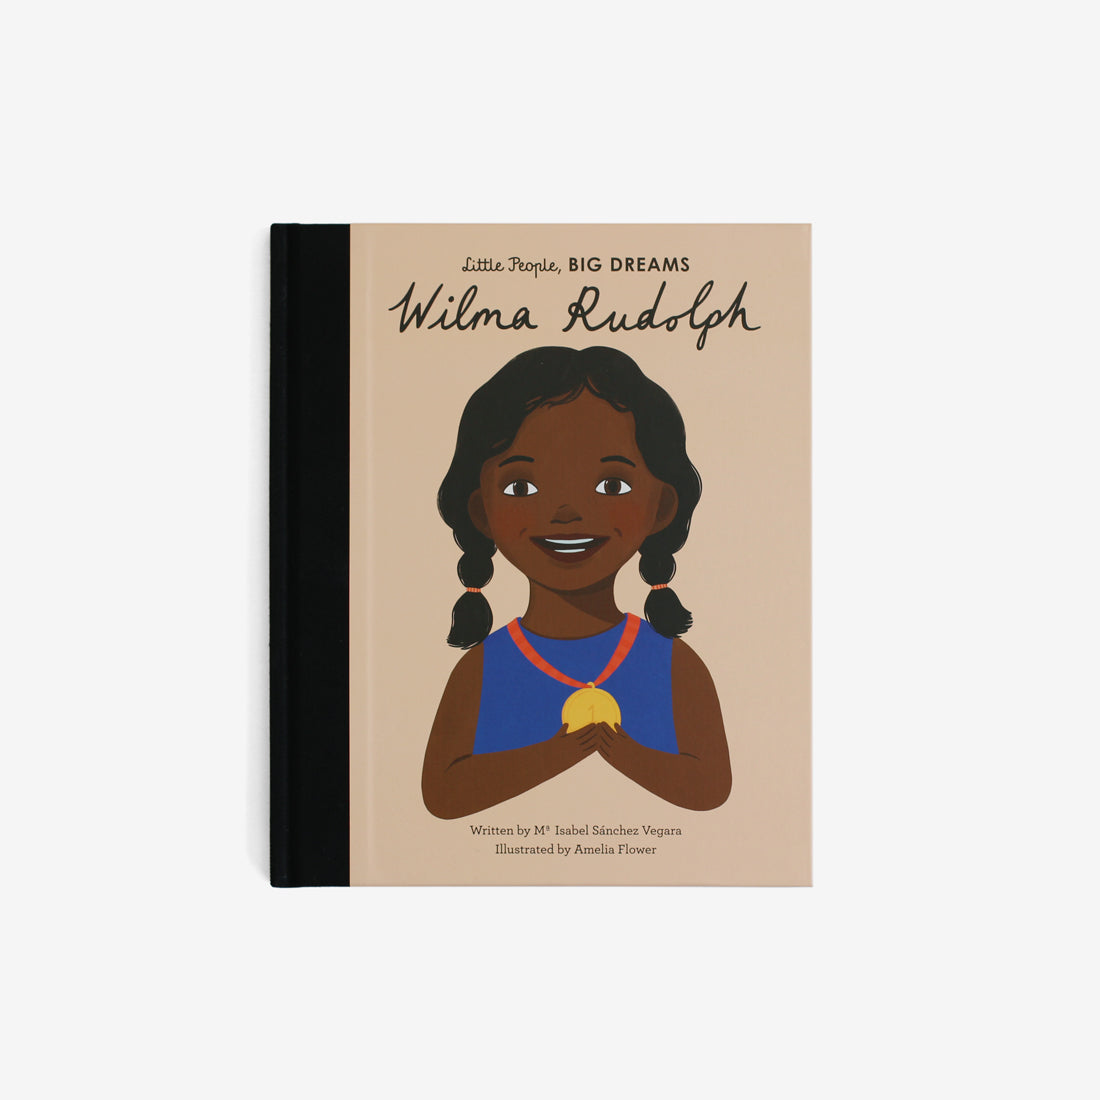 Little People, Big Dreams: Wilma Rudolph